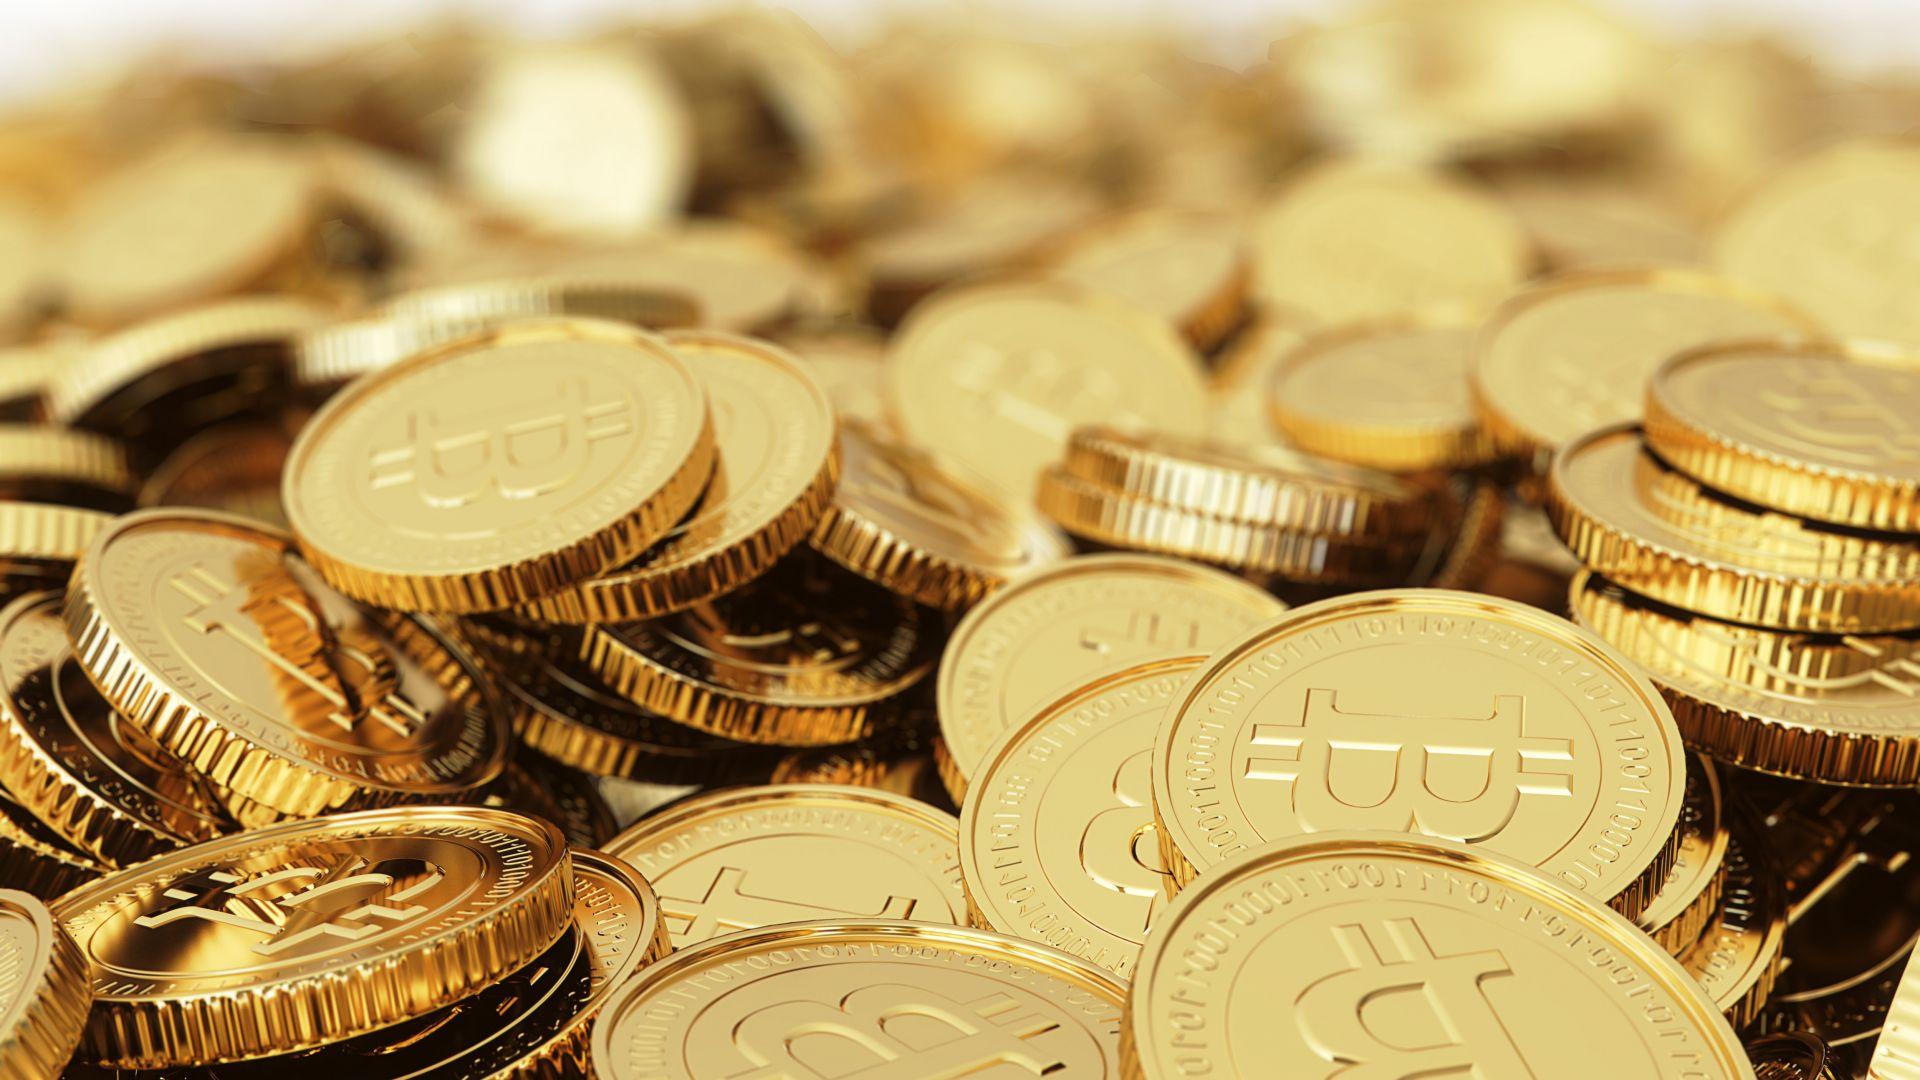 Wallpaper Full Color Hd Bitcoin Wallpapers And Photos 4k Full Hd Everest Hill